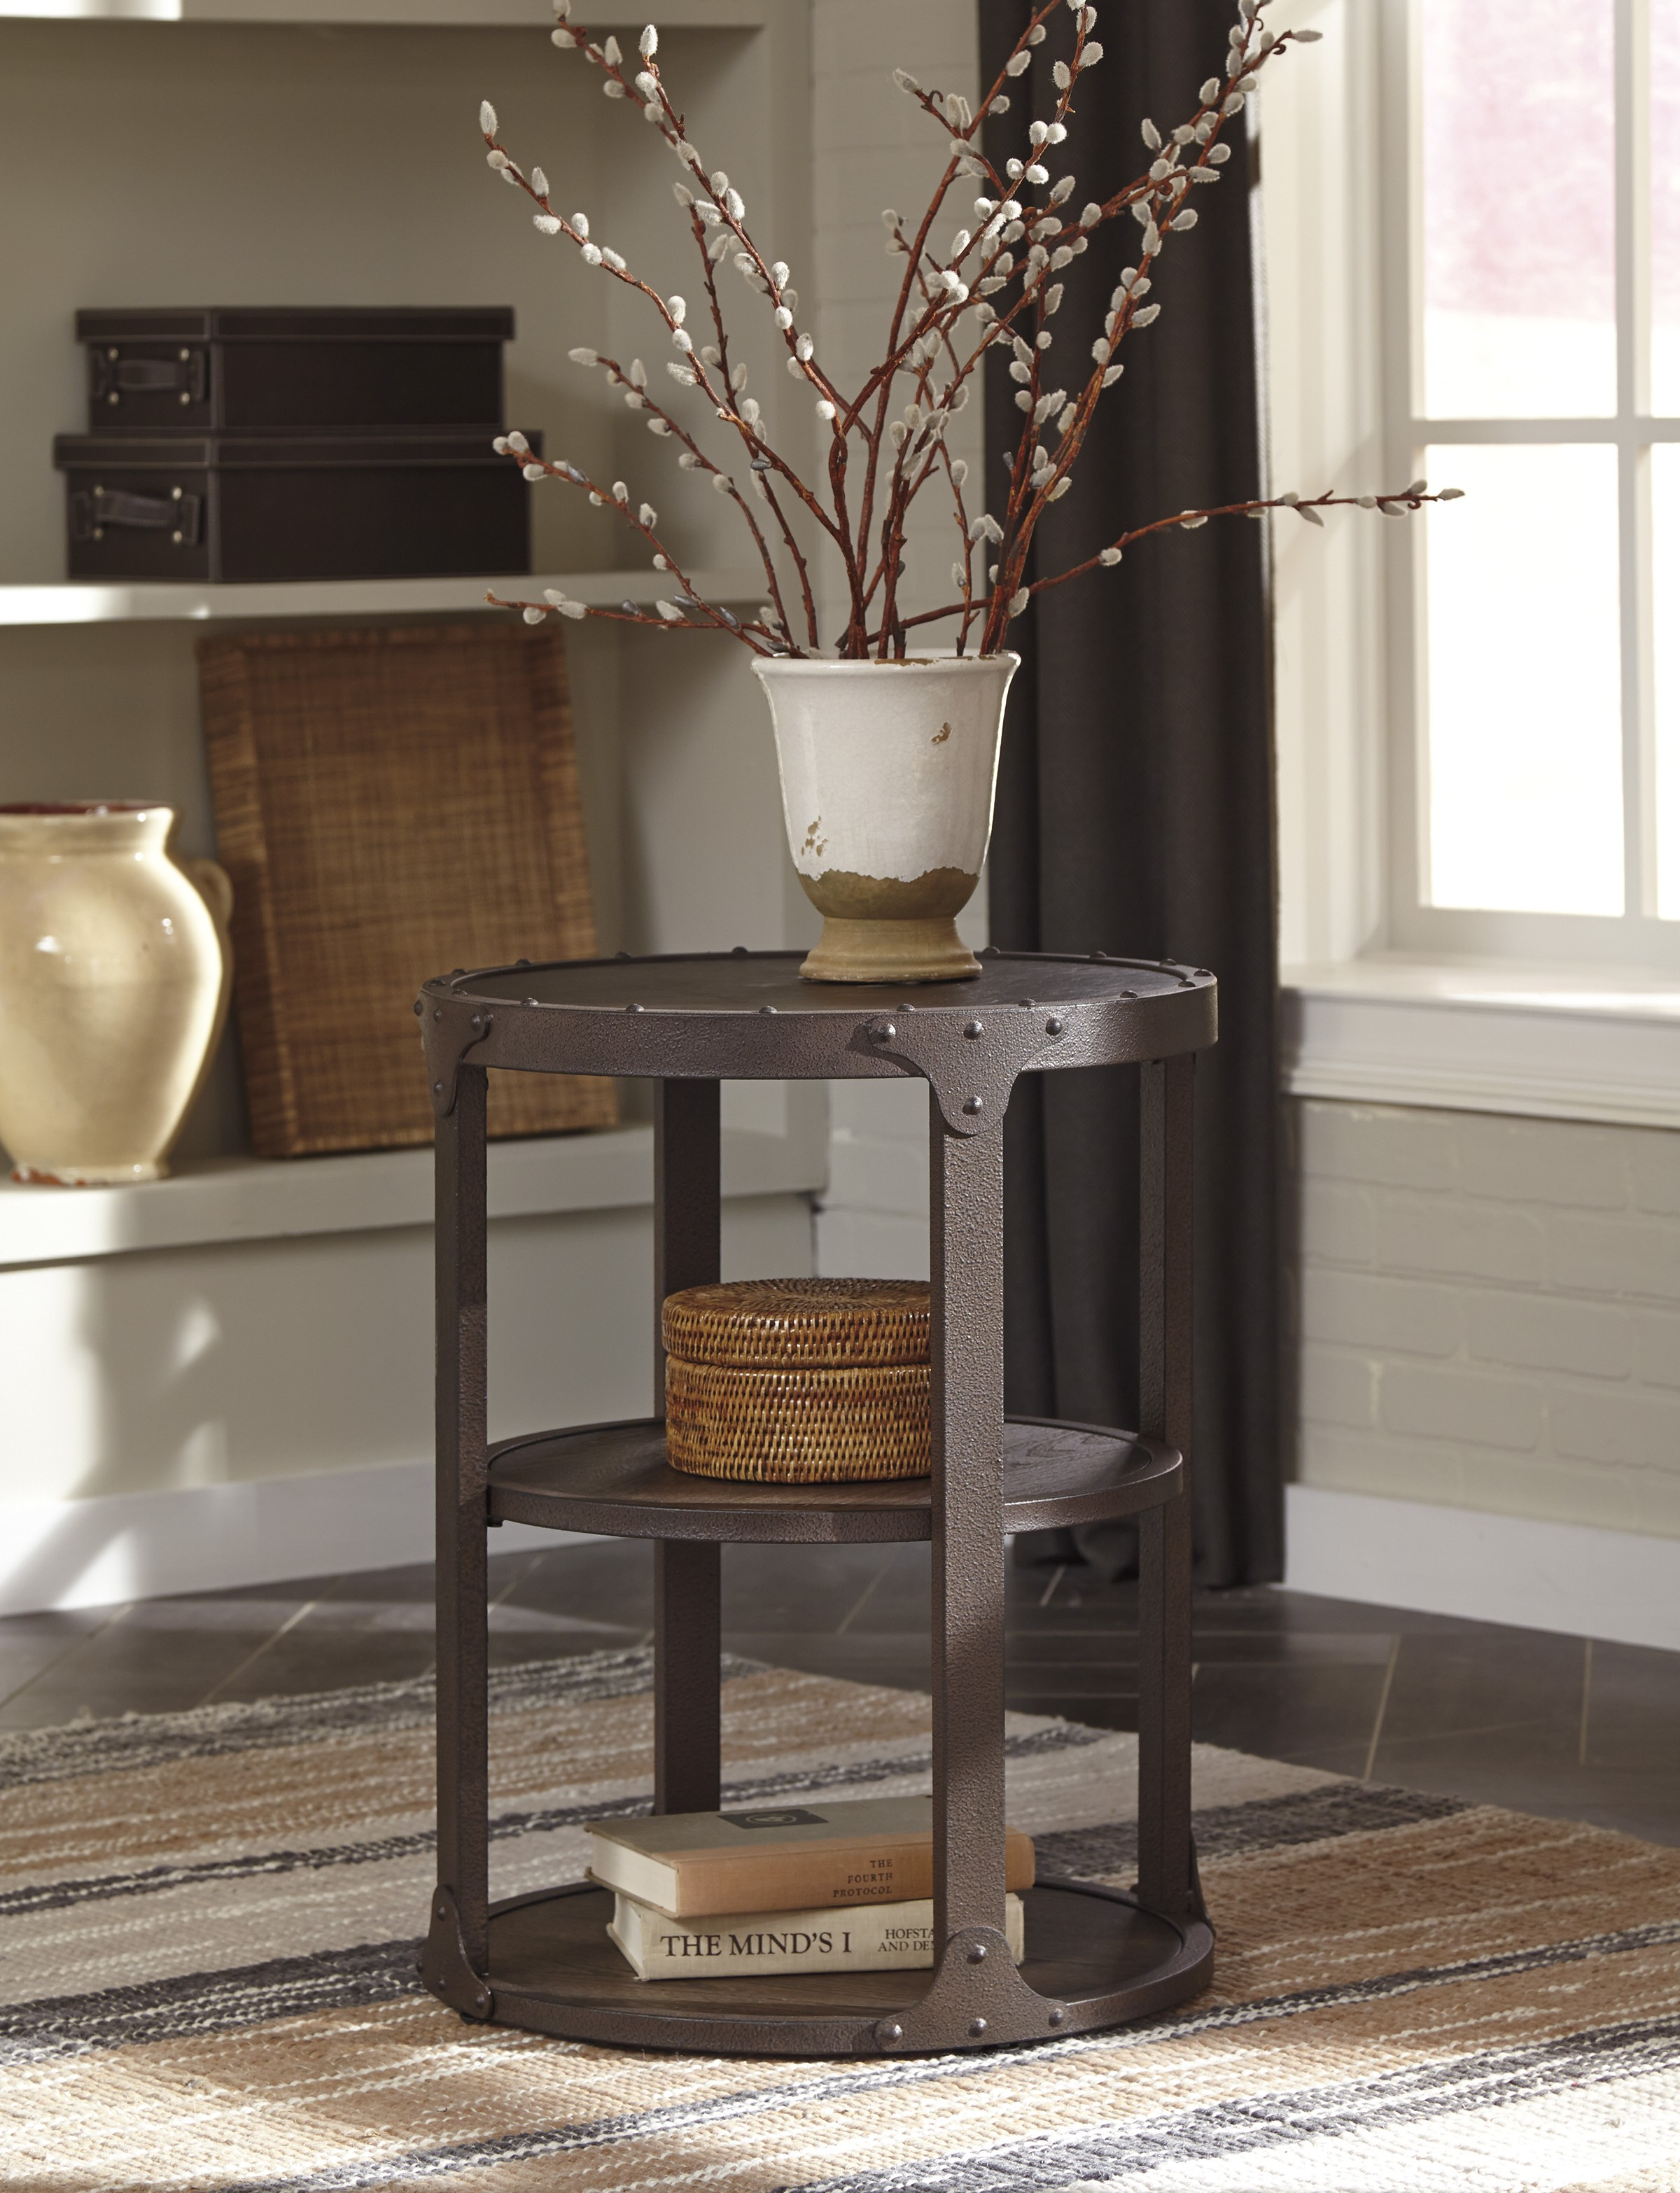 rustic metal accent table coma frique studio ashley shofern round end brown finish main finis tribecca home galena industrial modern iron tabl ikea bench tray lamp attic heirlooms